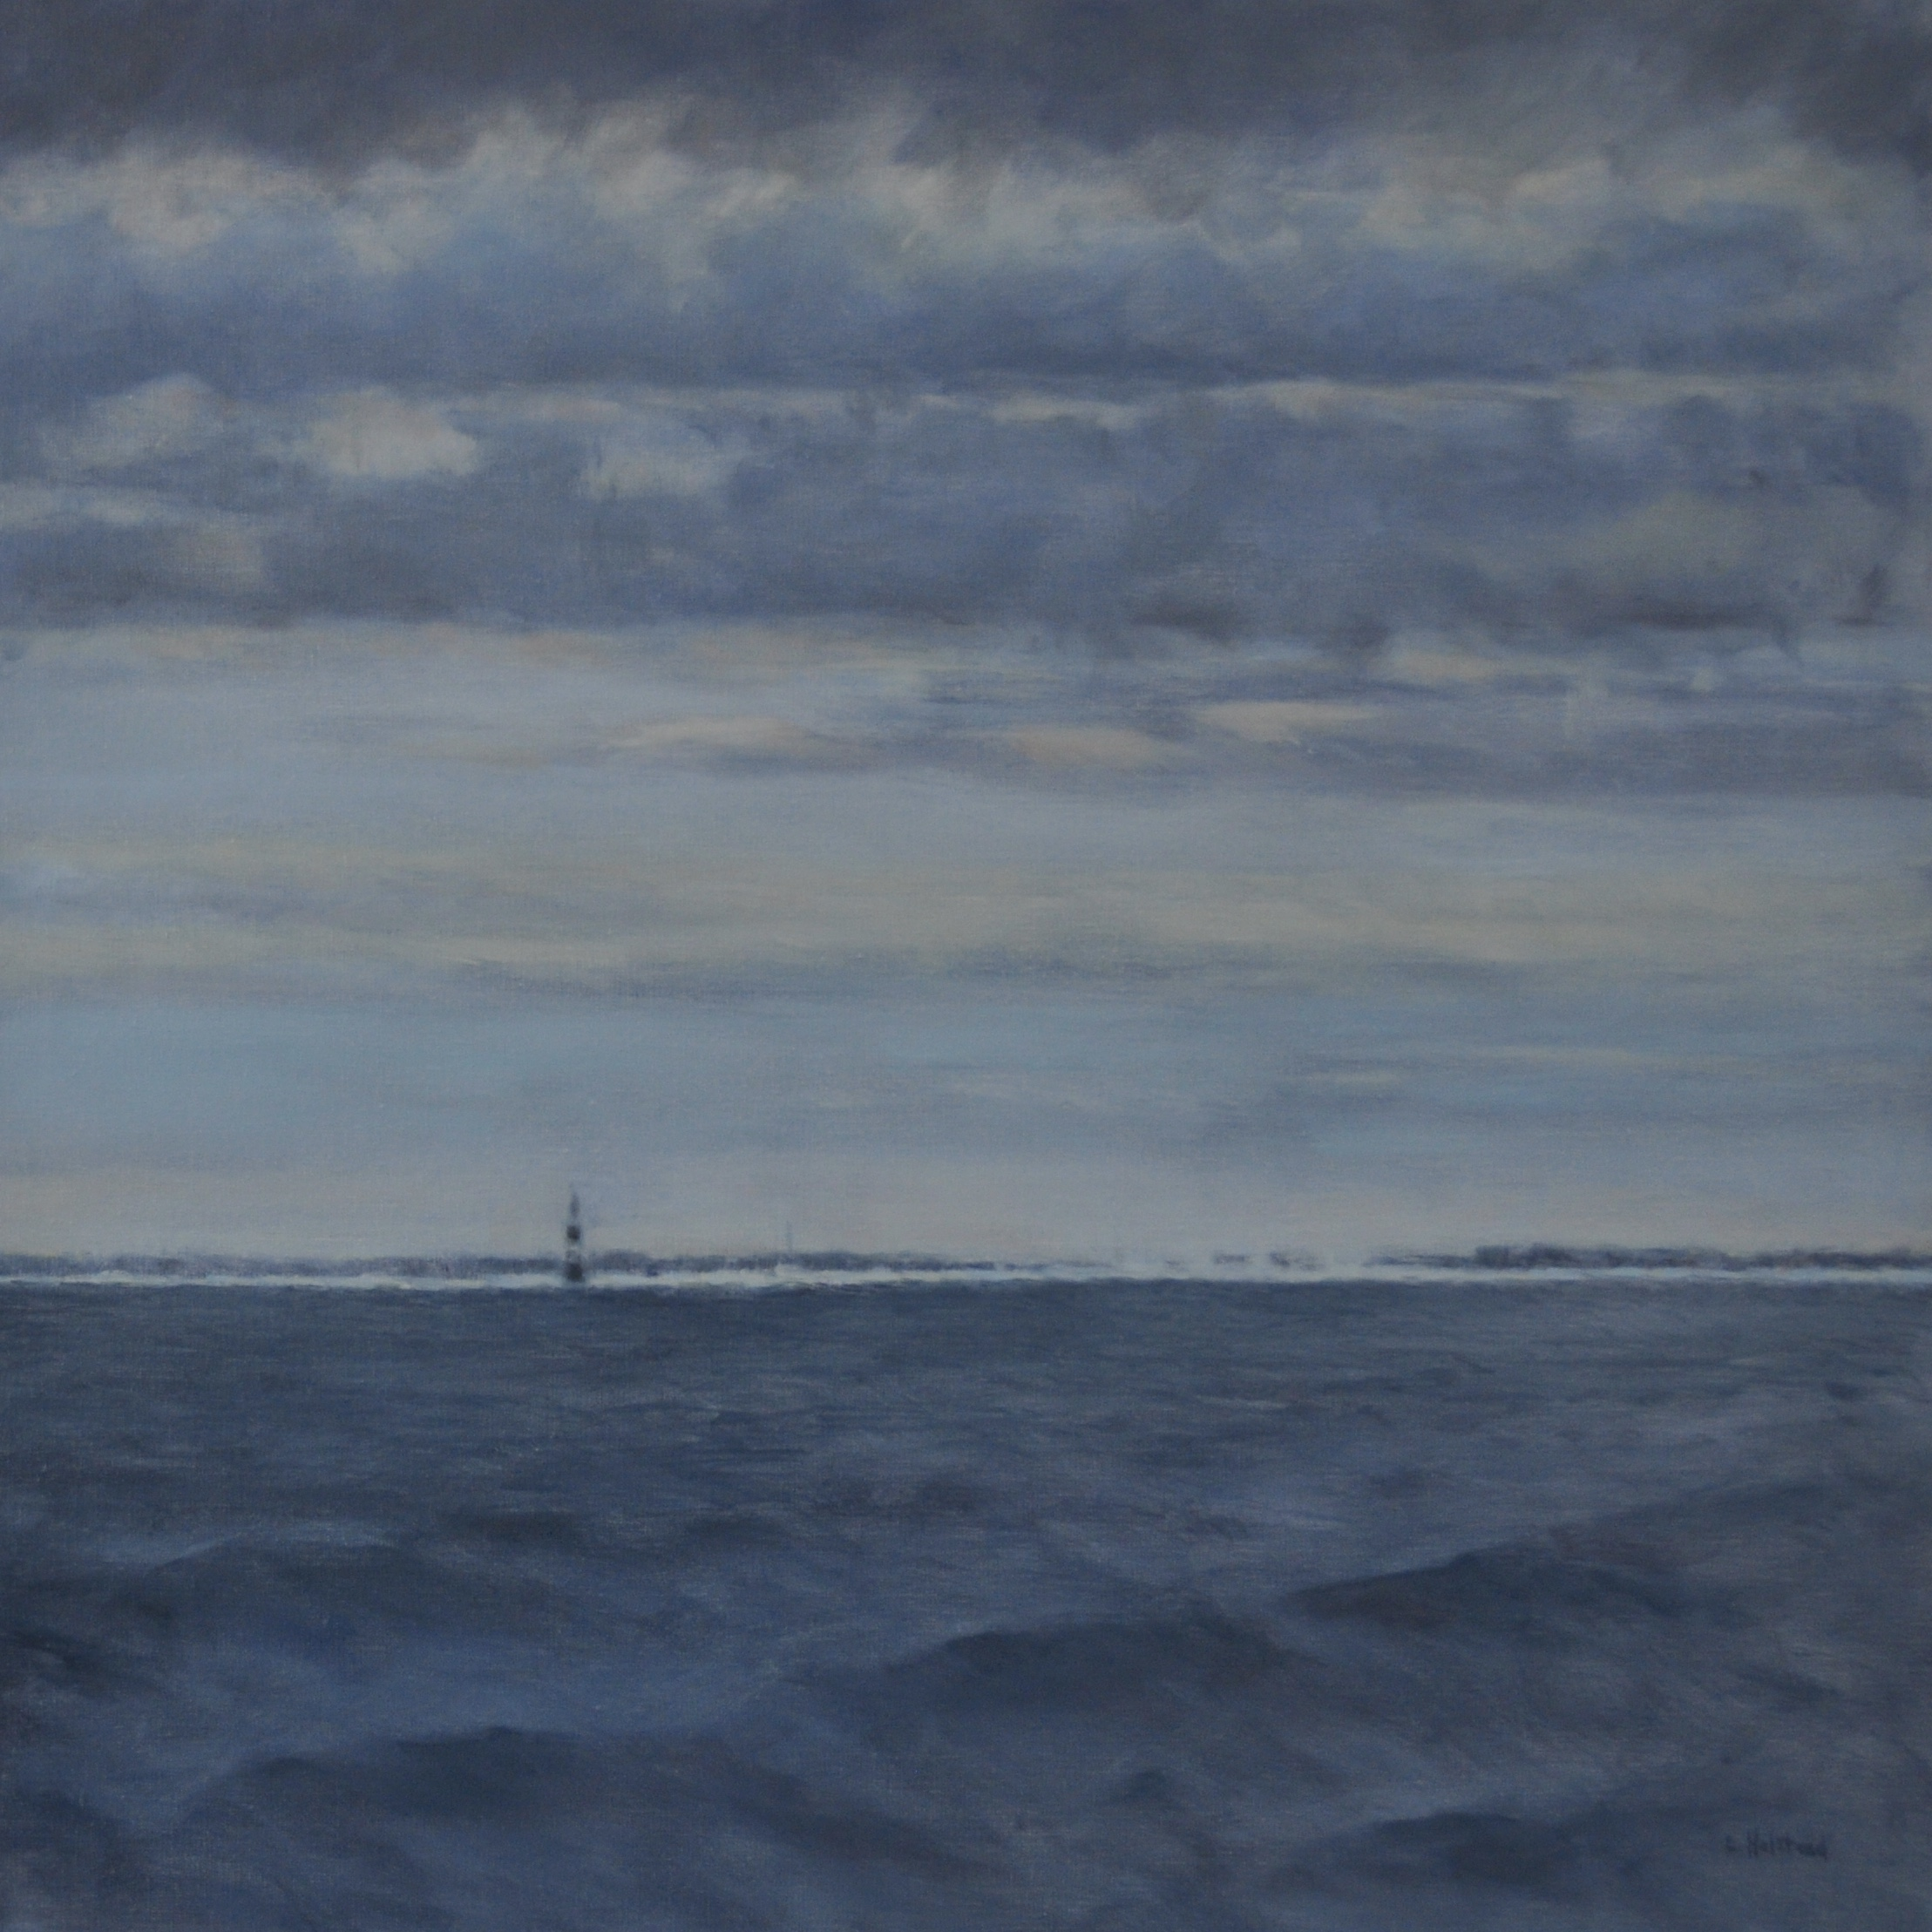 Mouth of the River Ahead, Oil on Linen, 30 x 30, sold